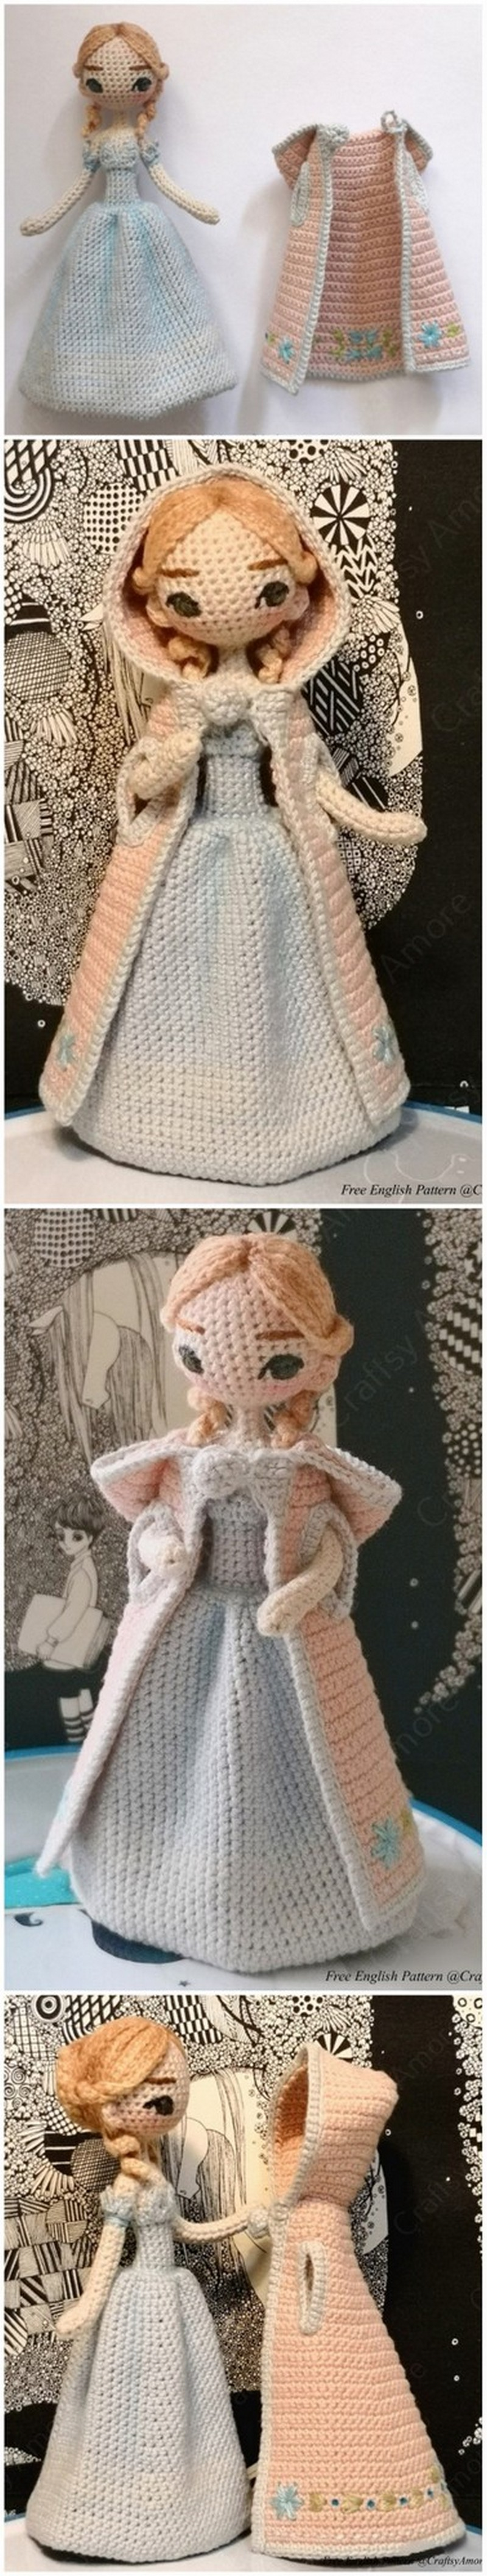 Free Crochet Doll Pattern- The Friendly Grace - thefriendlyredfox.com | 4233x800